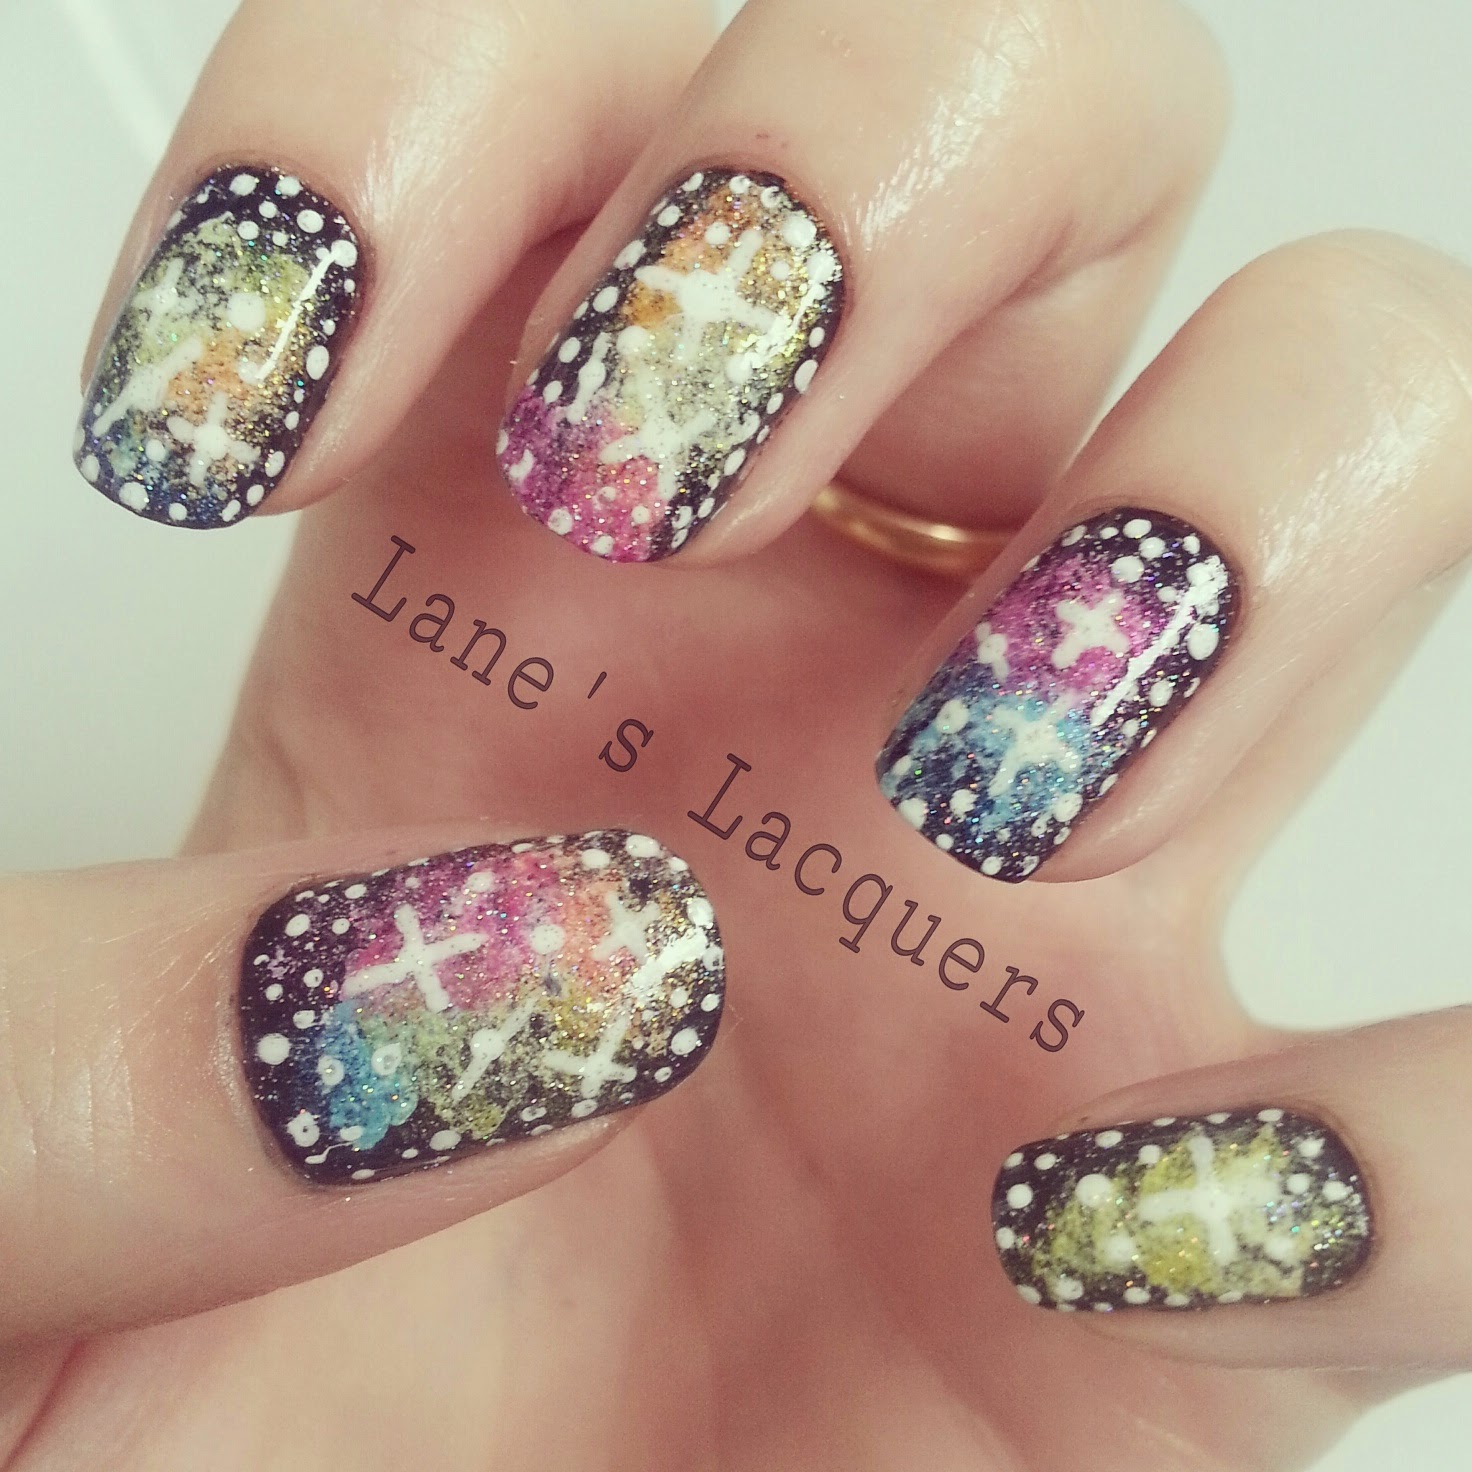 color-club-sparkly-galaxy-nail-art